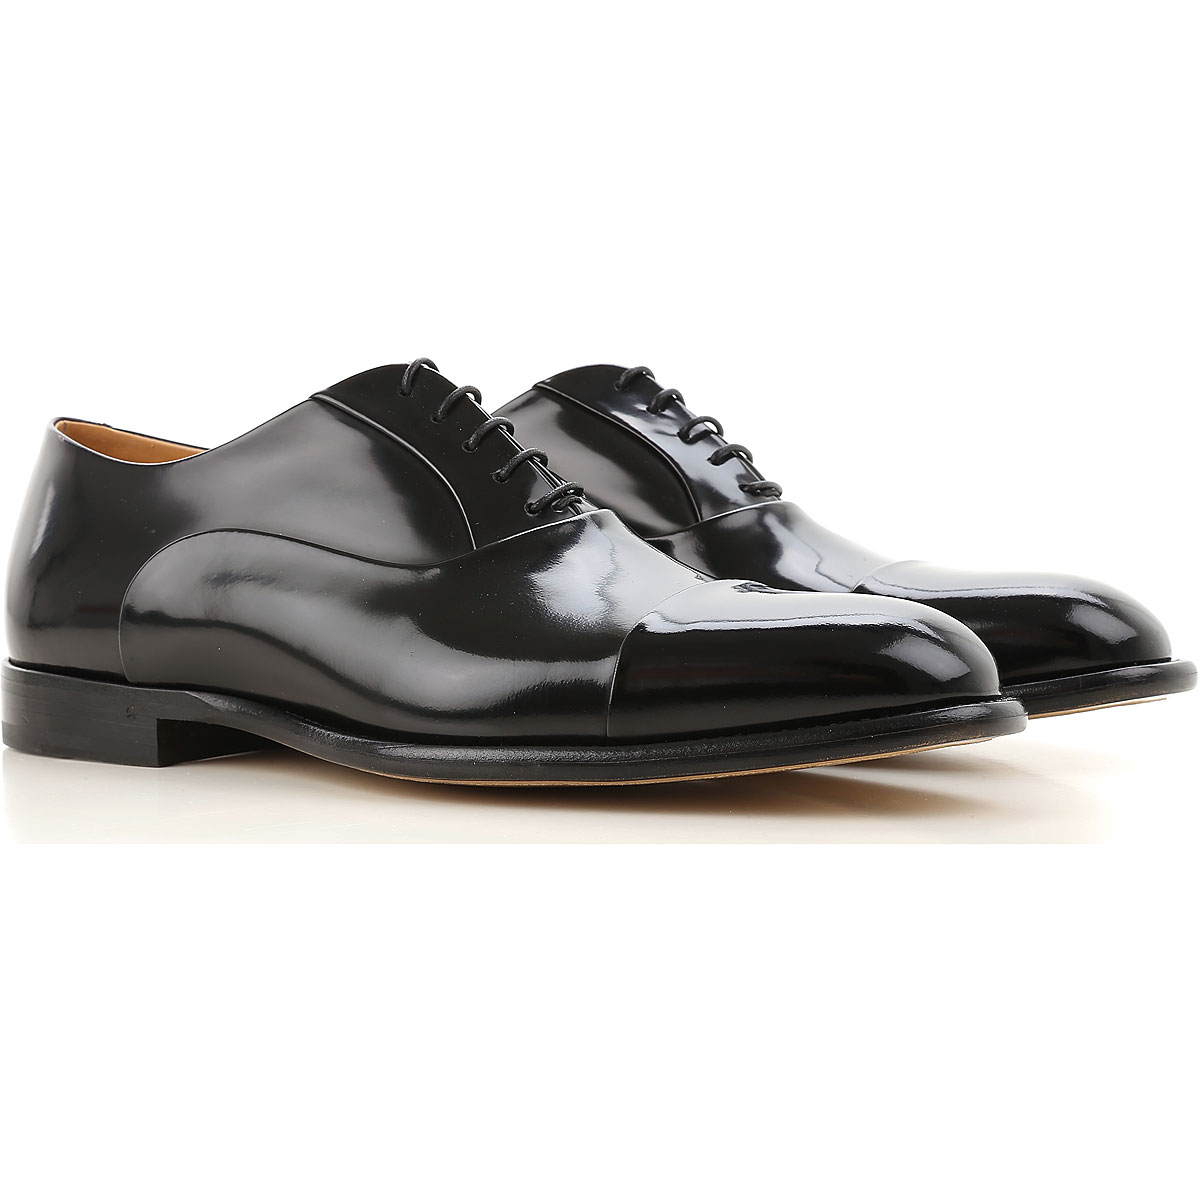 Image of Fabi Lace Up Shoes for Men Oxfords, Derbies and Brogues On Sale, Black, Leather, 2017, 10 10.5 11 12 7 7.5 8 8.5 9 9.5